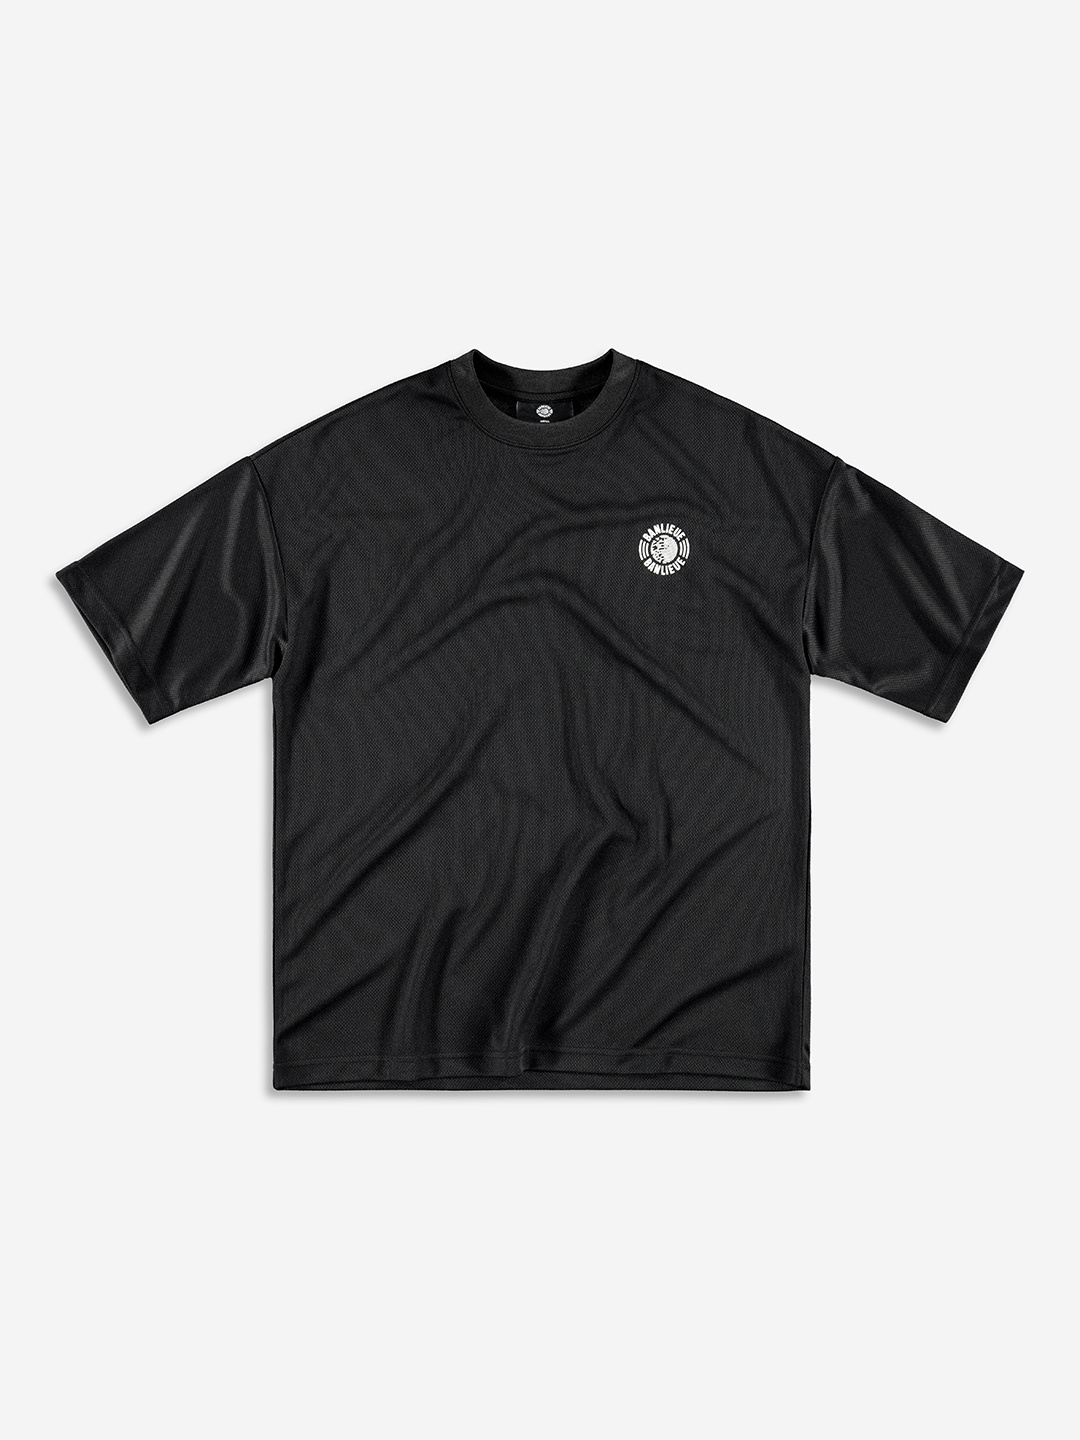 GLOBAL MESH T-SHIRT BLACK